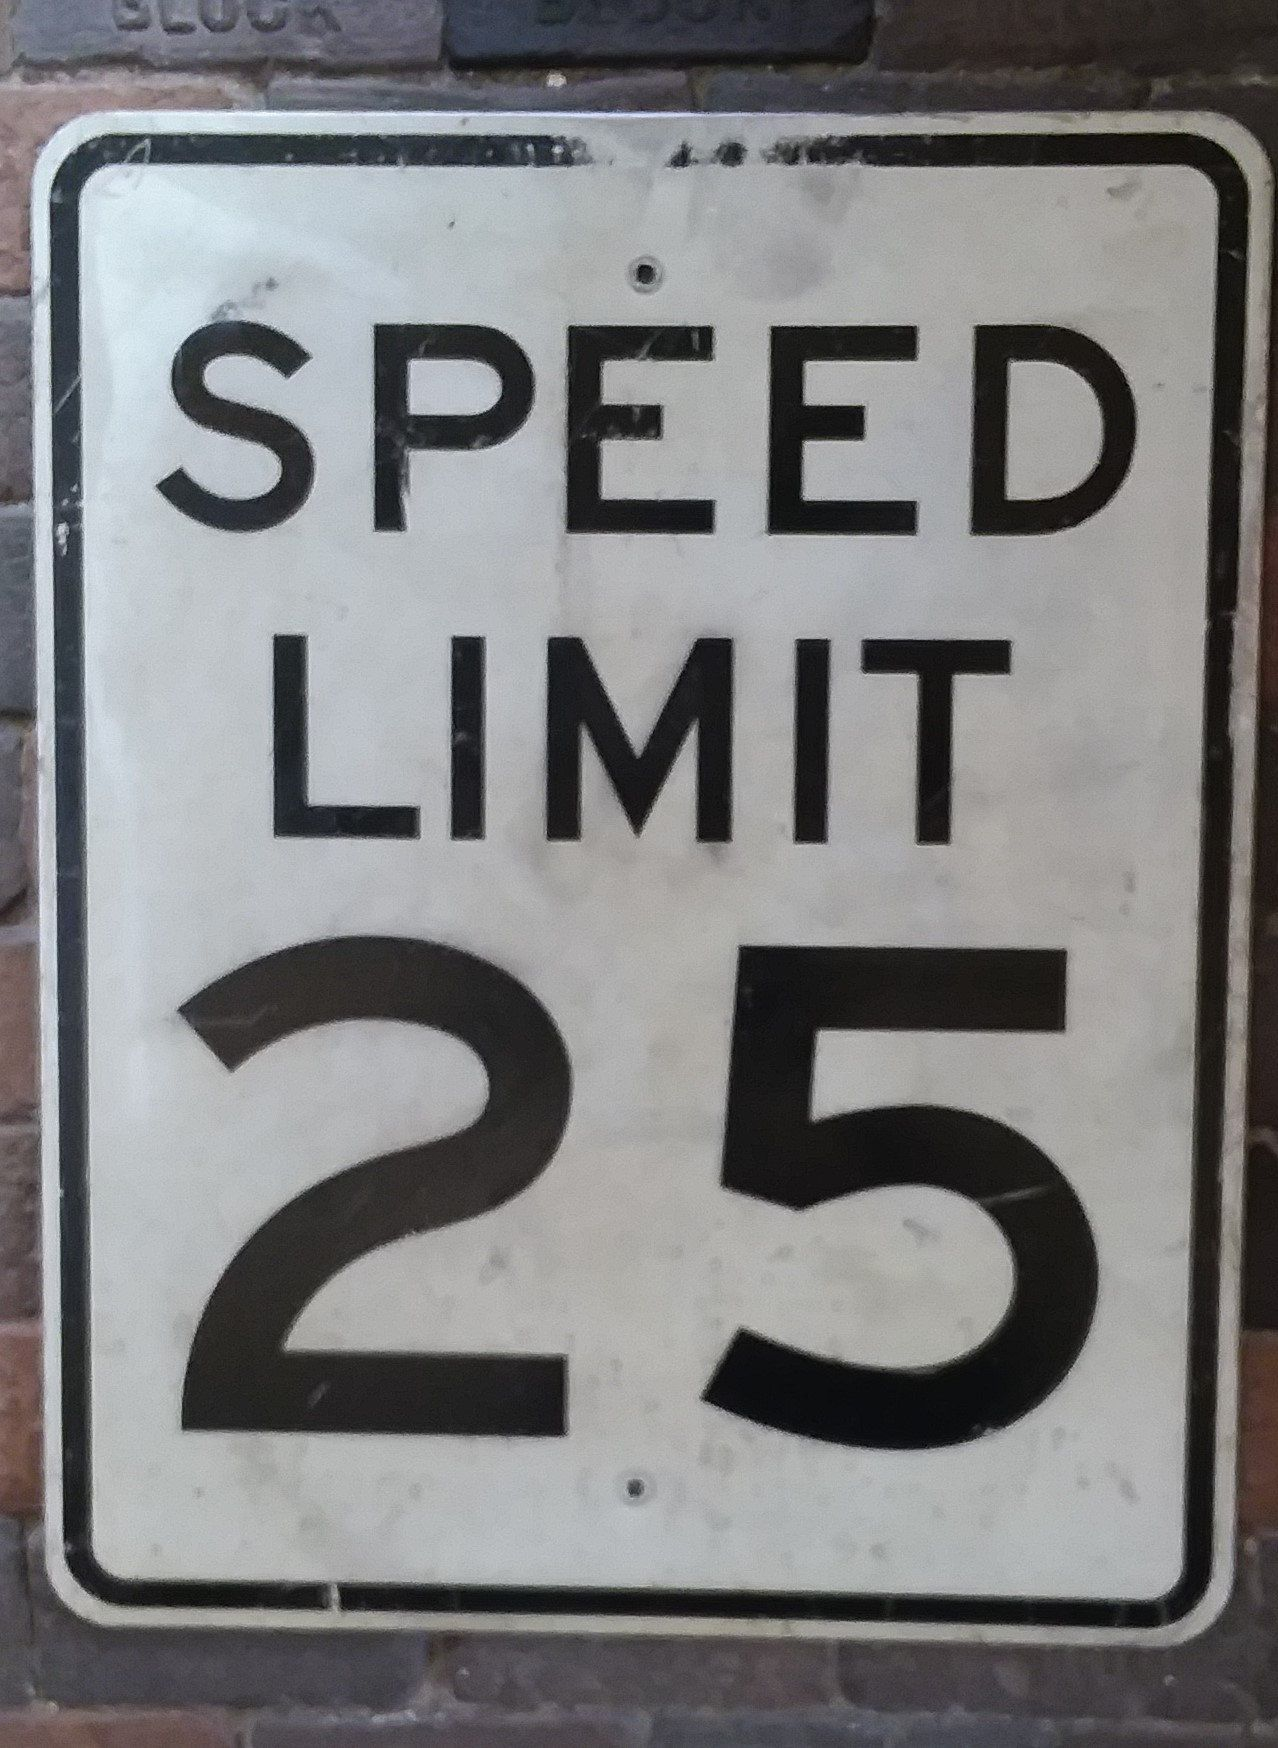 miles per hour SPEED LIMIT  20 MPH road and street signs shop decor gargae